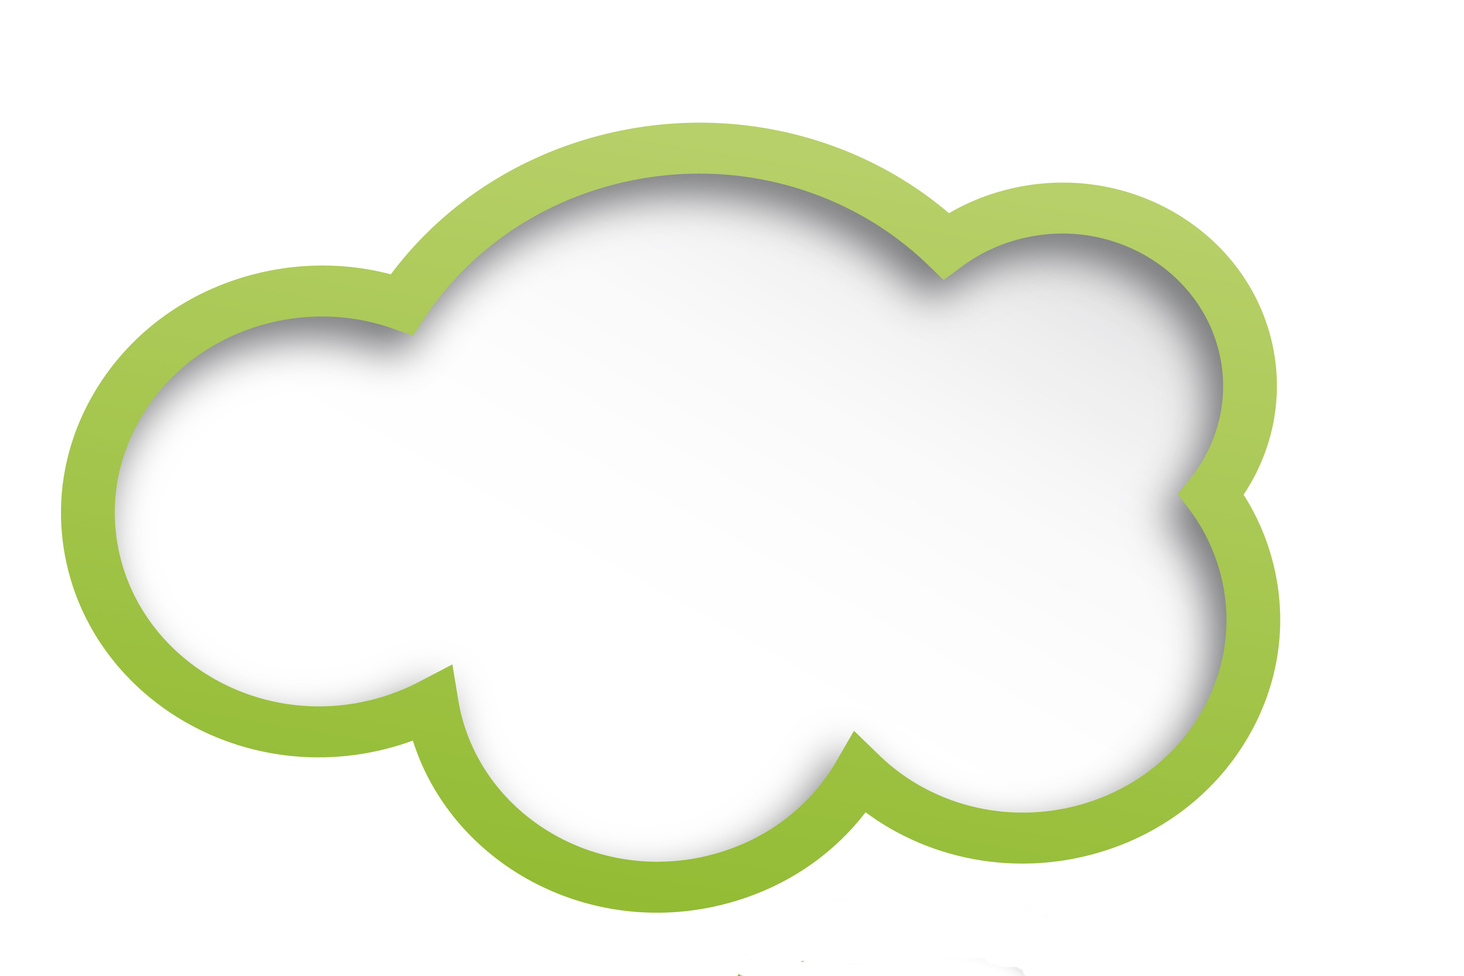 Clouds clipart green Move to green hit targets